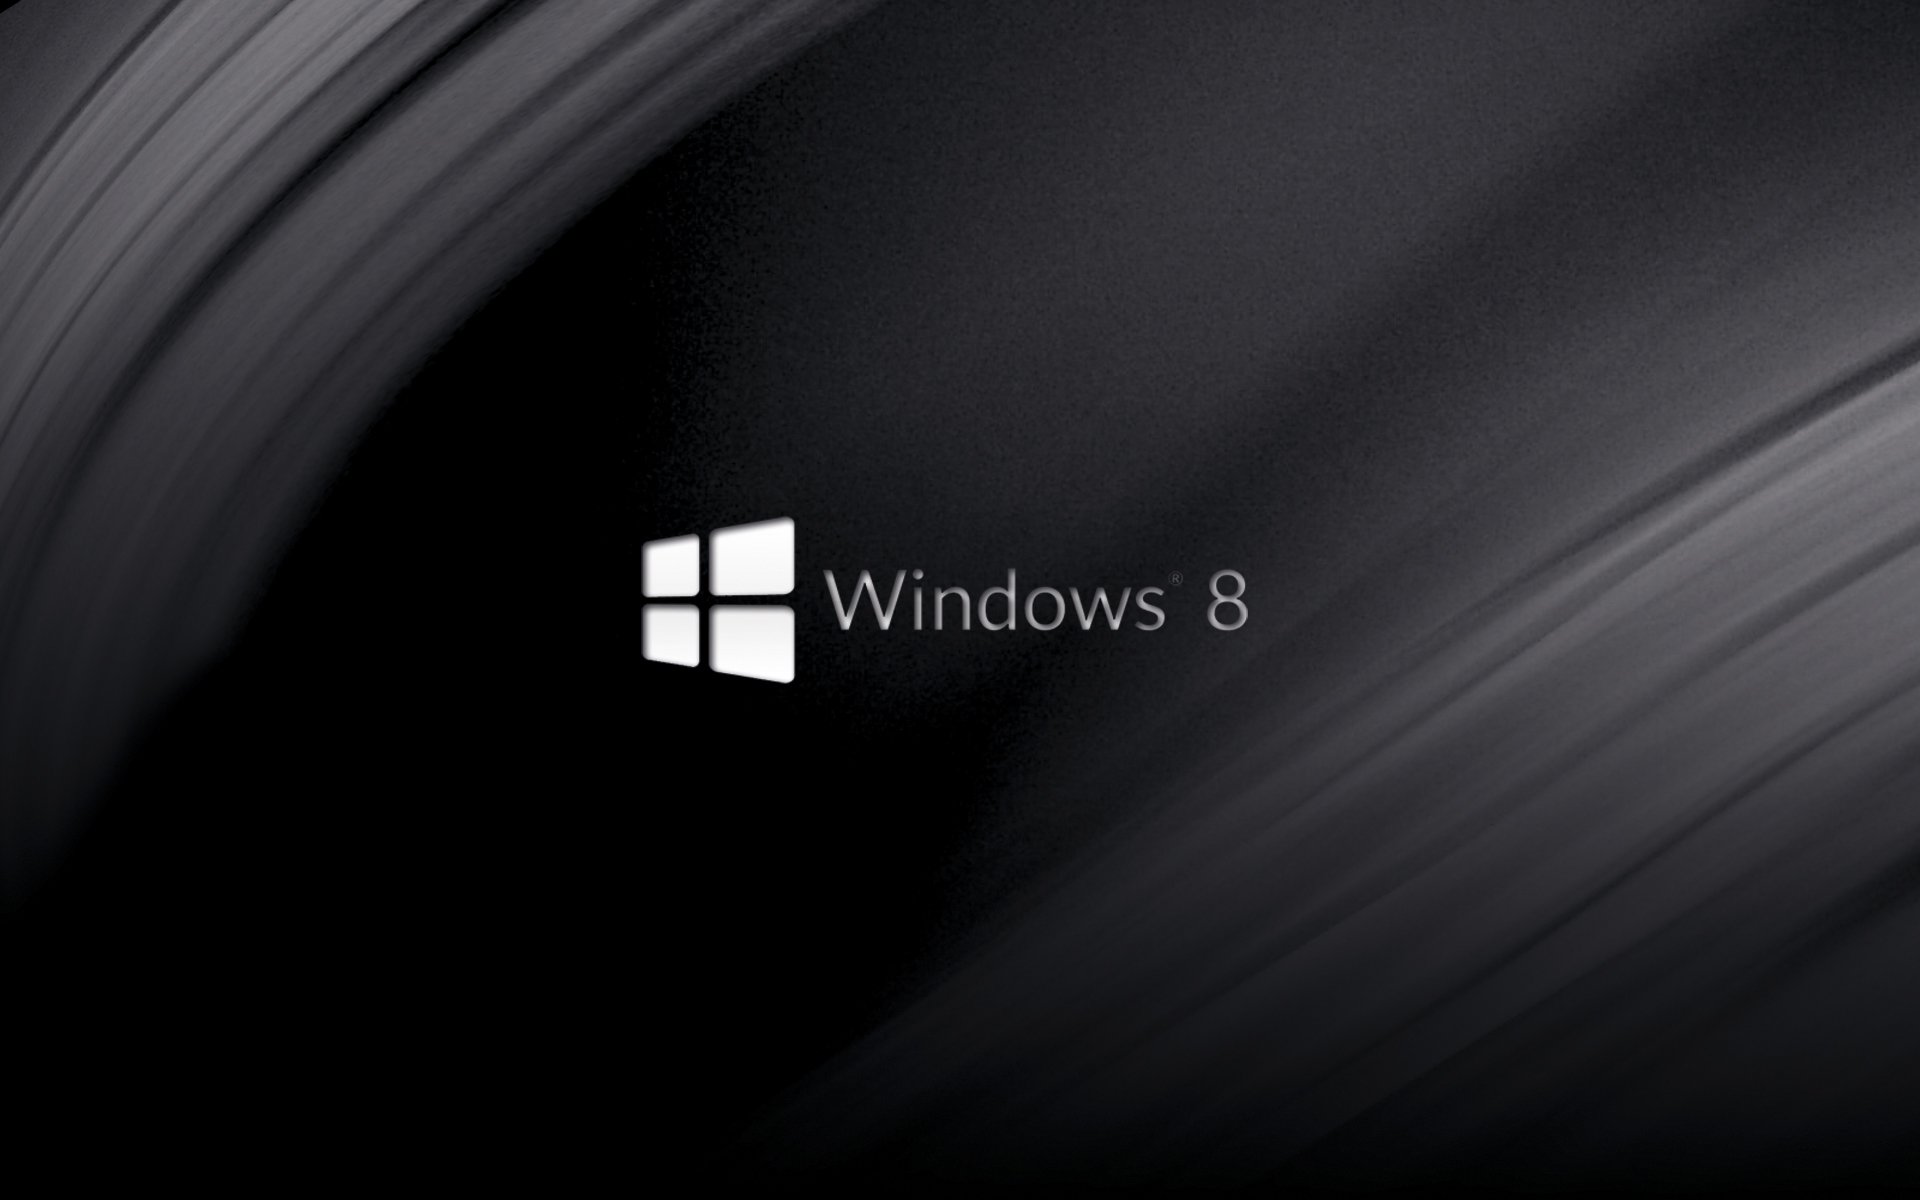 windows 8 black wallpaper - sf wallpaper